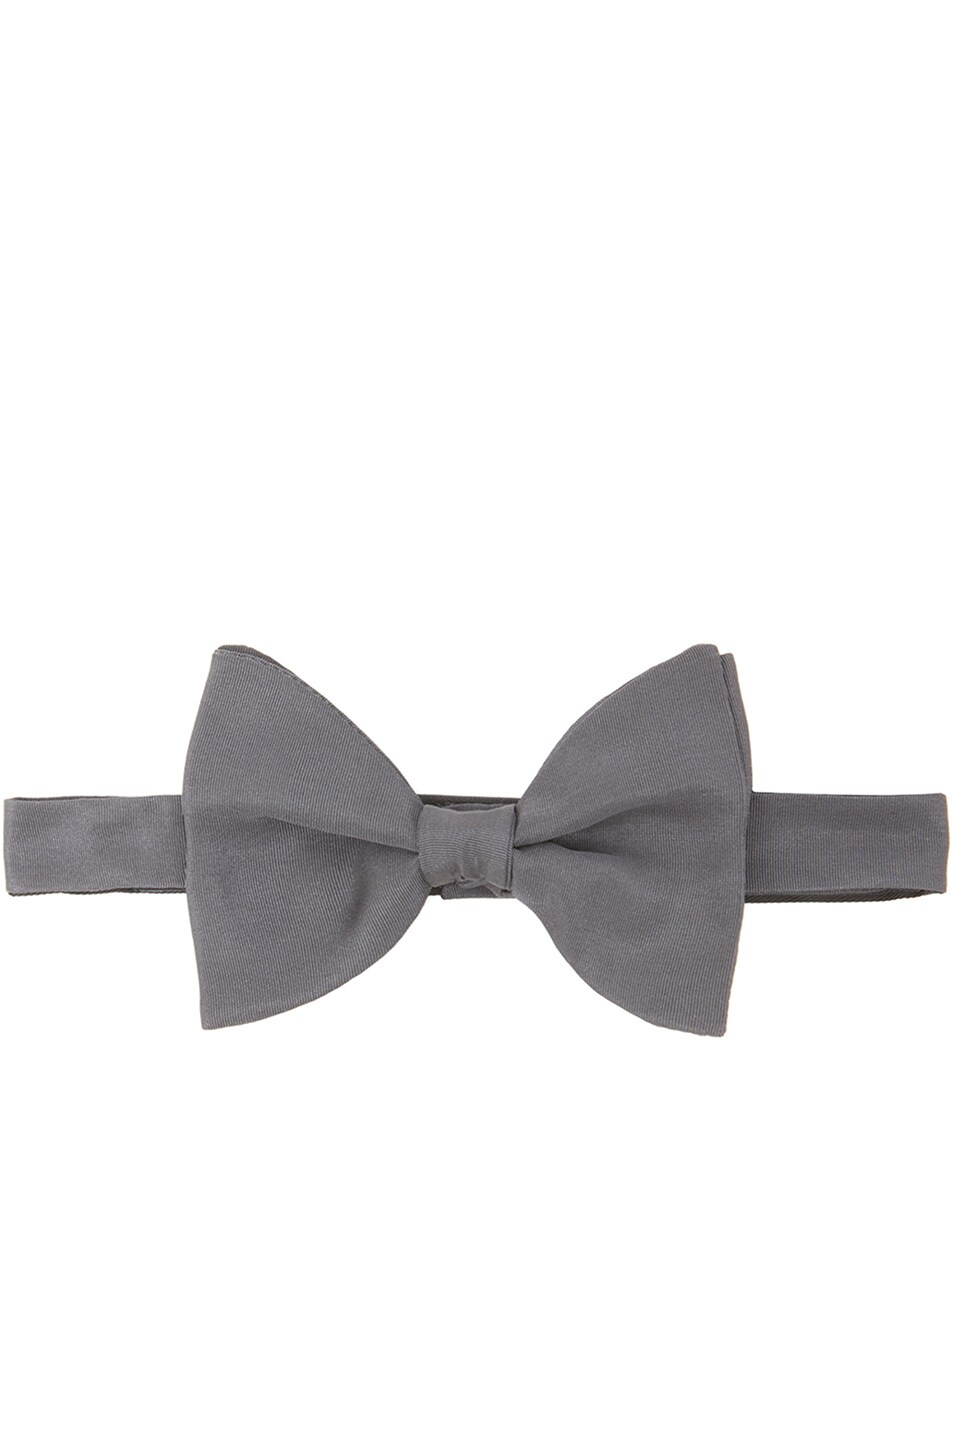 Image 1 of Lanvin Alber Bow Tie in Gray